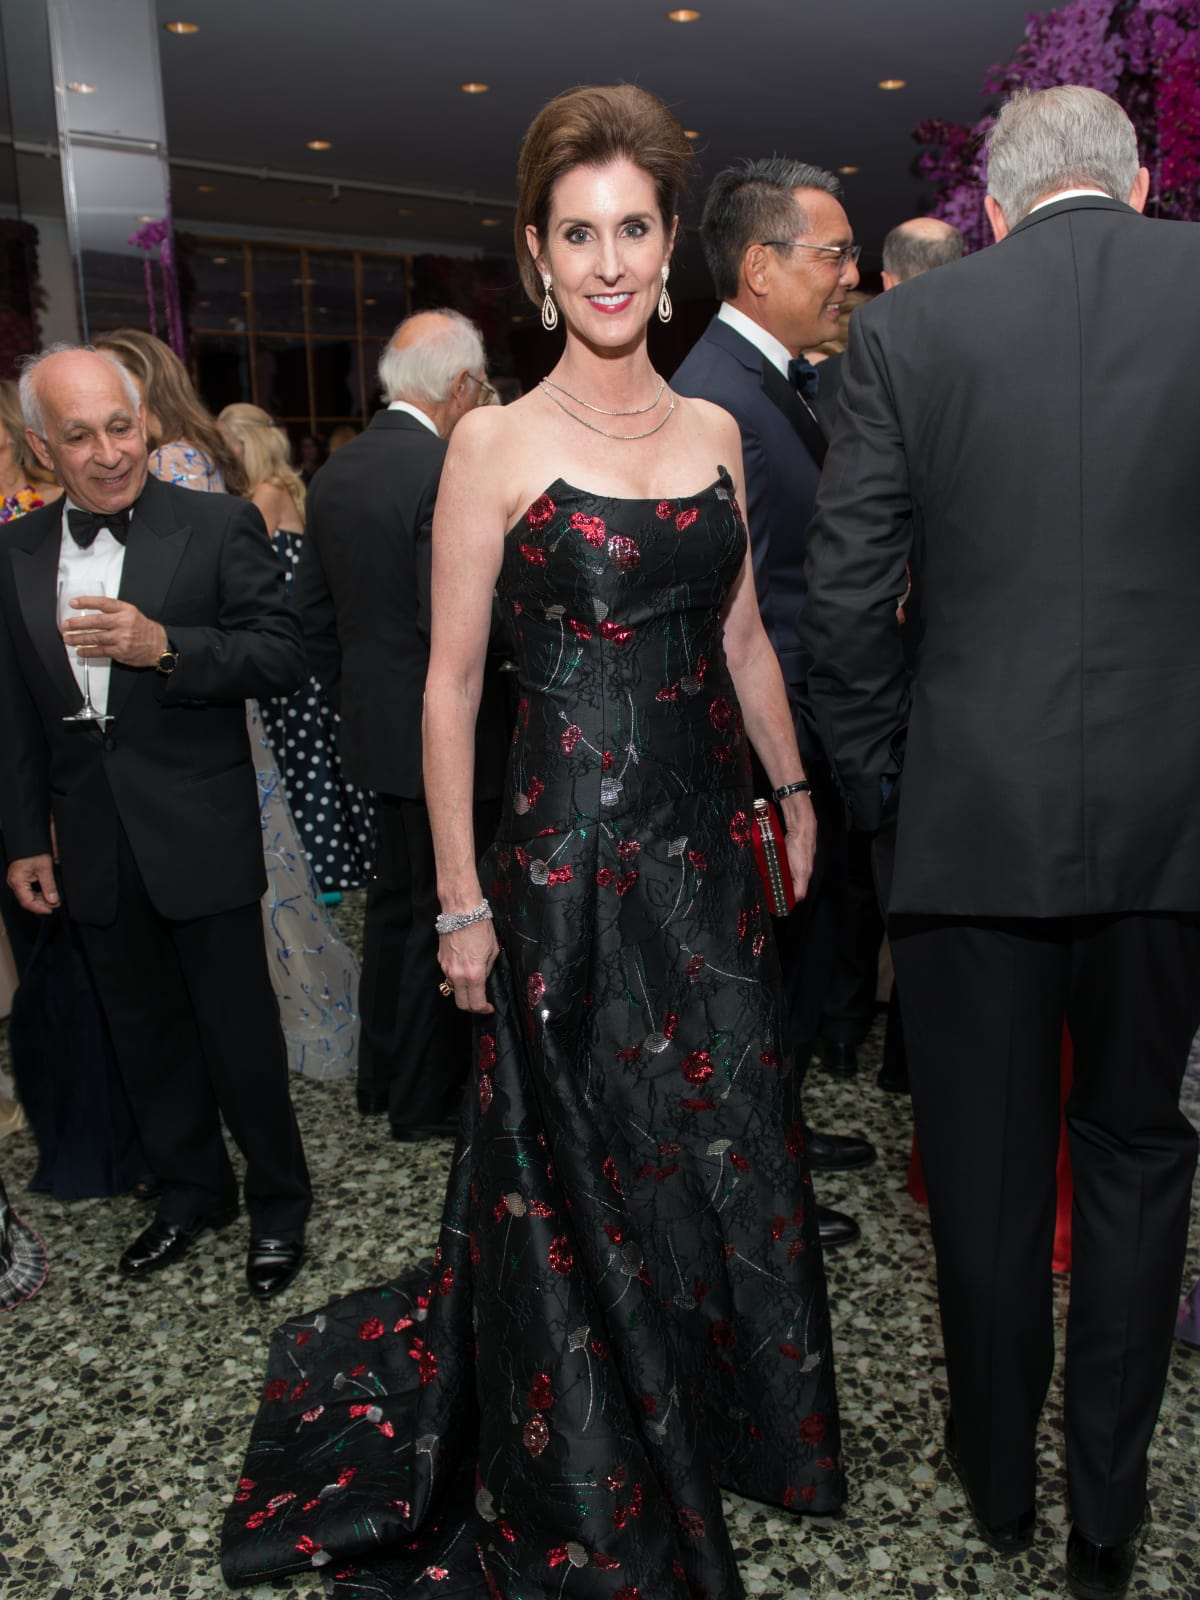 Phoebe Tudor at MFAH Grand Gala Ball 2017